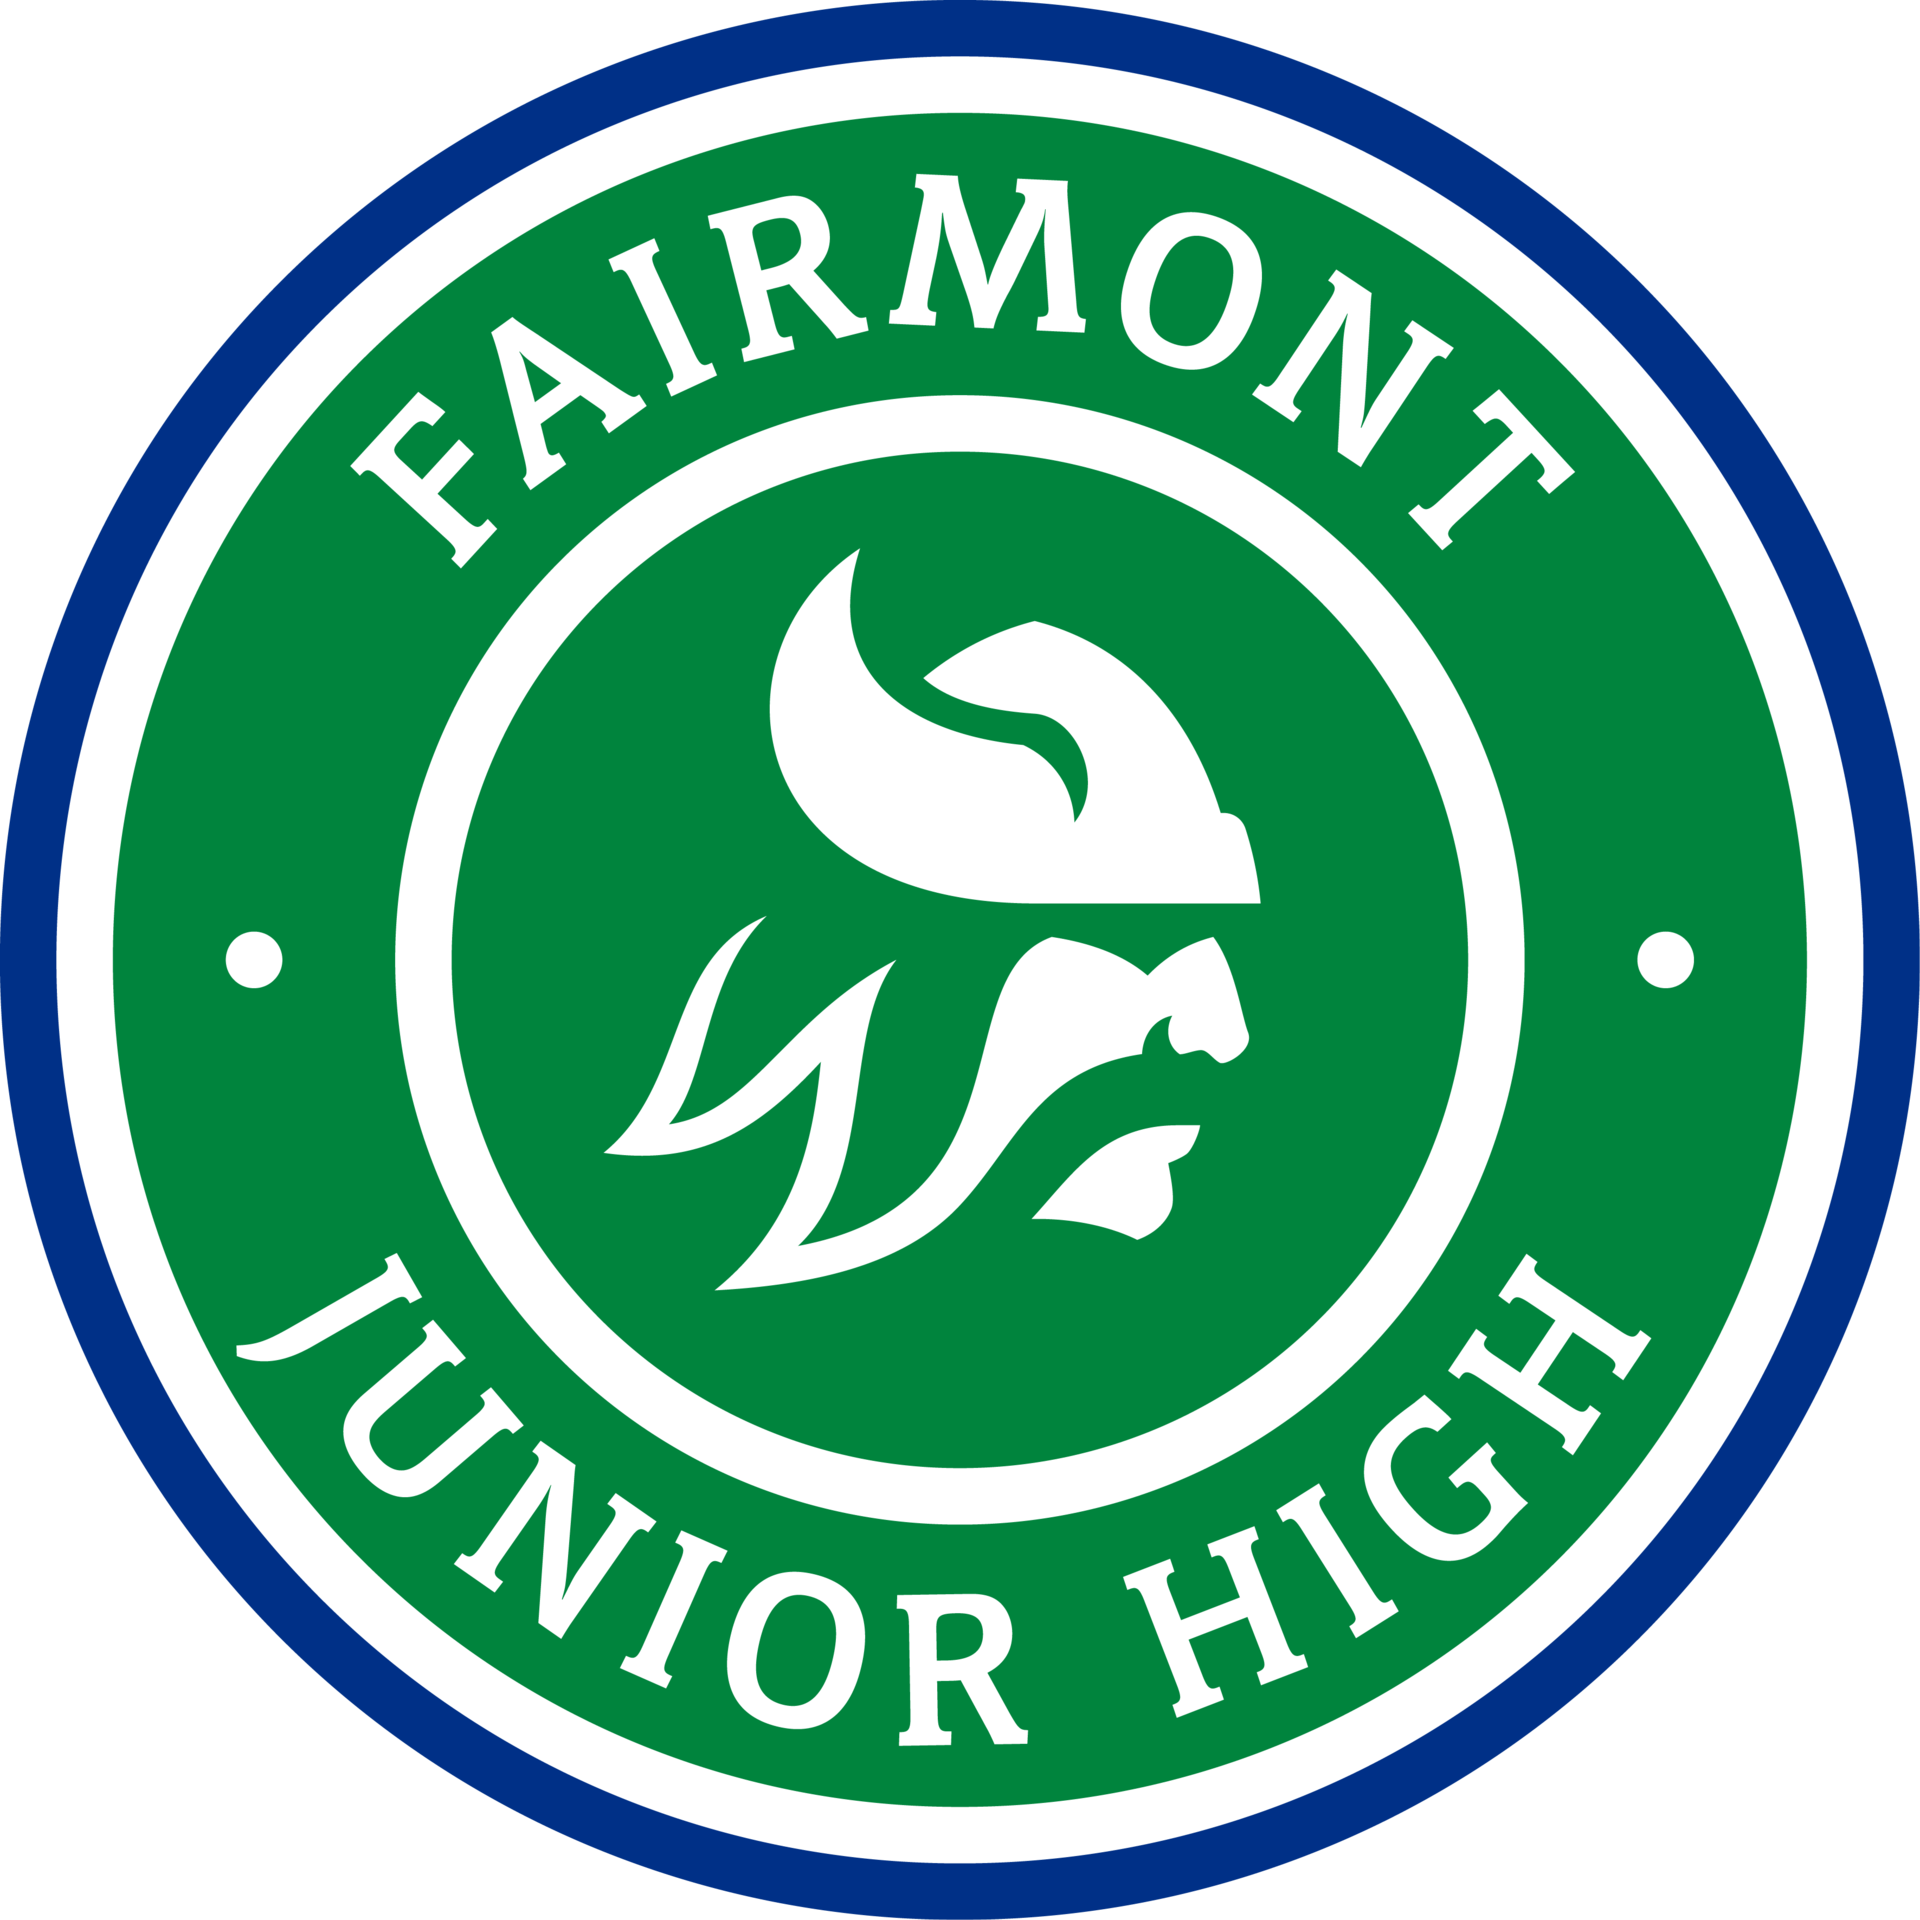 Fairmont Junior High school seal